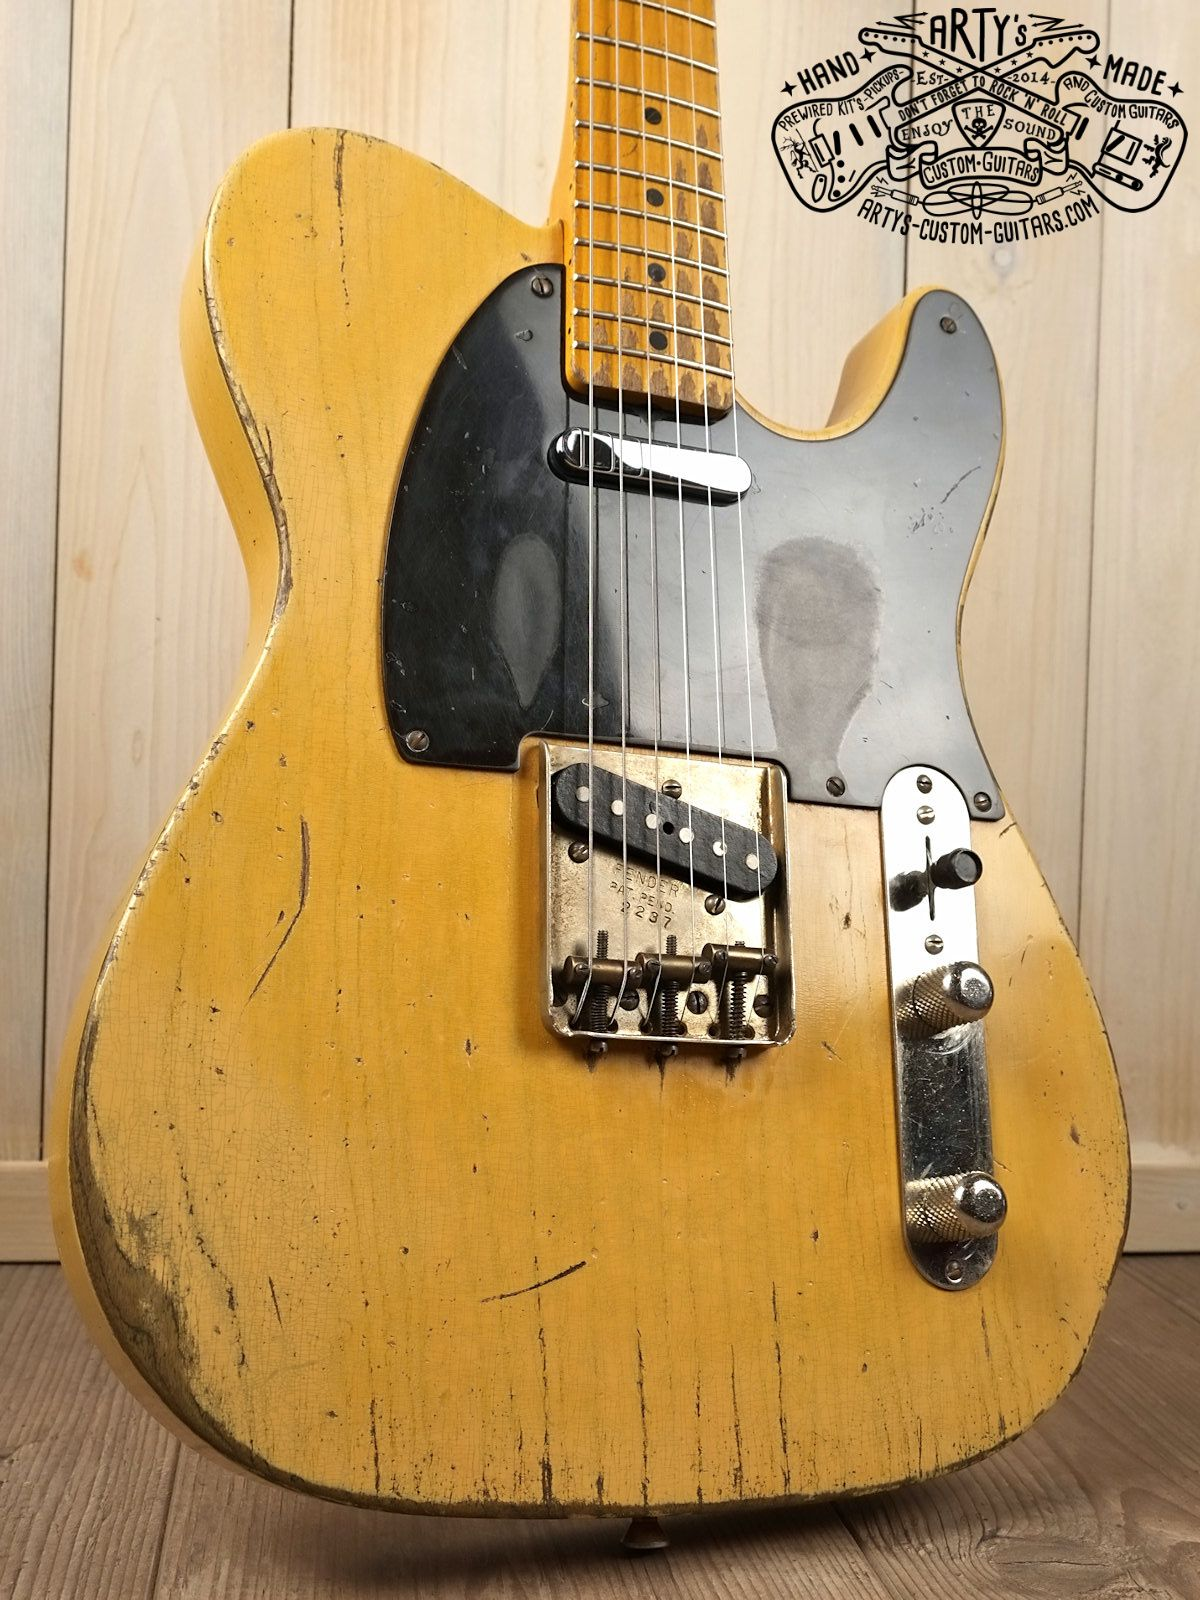 Custom guitar wiring diagram free download wiring diagram xwiaw 4 free download wiring diagram artys relic aged custom shop guitars gallery prewired kit harness of cheapraybanclubmaster Images